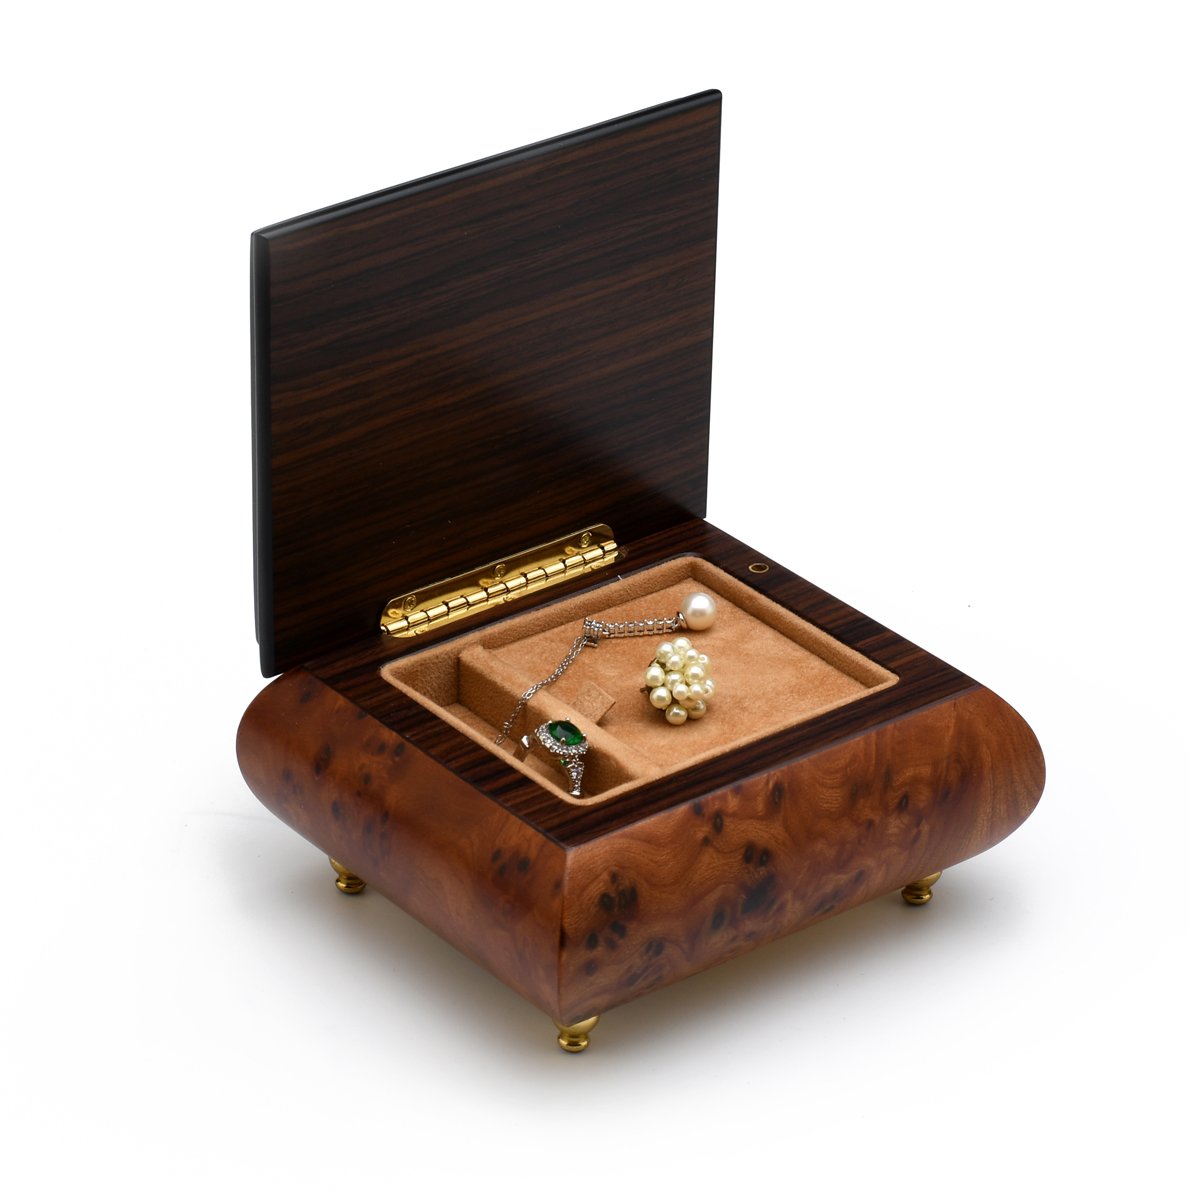 Adorable High Quality Music Box with Floral Themed Inlay